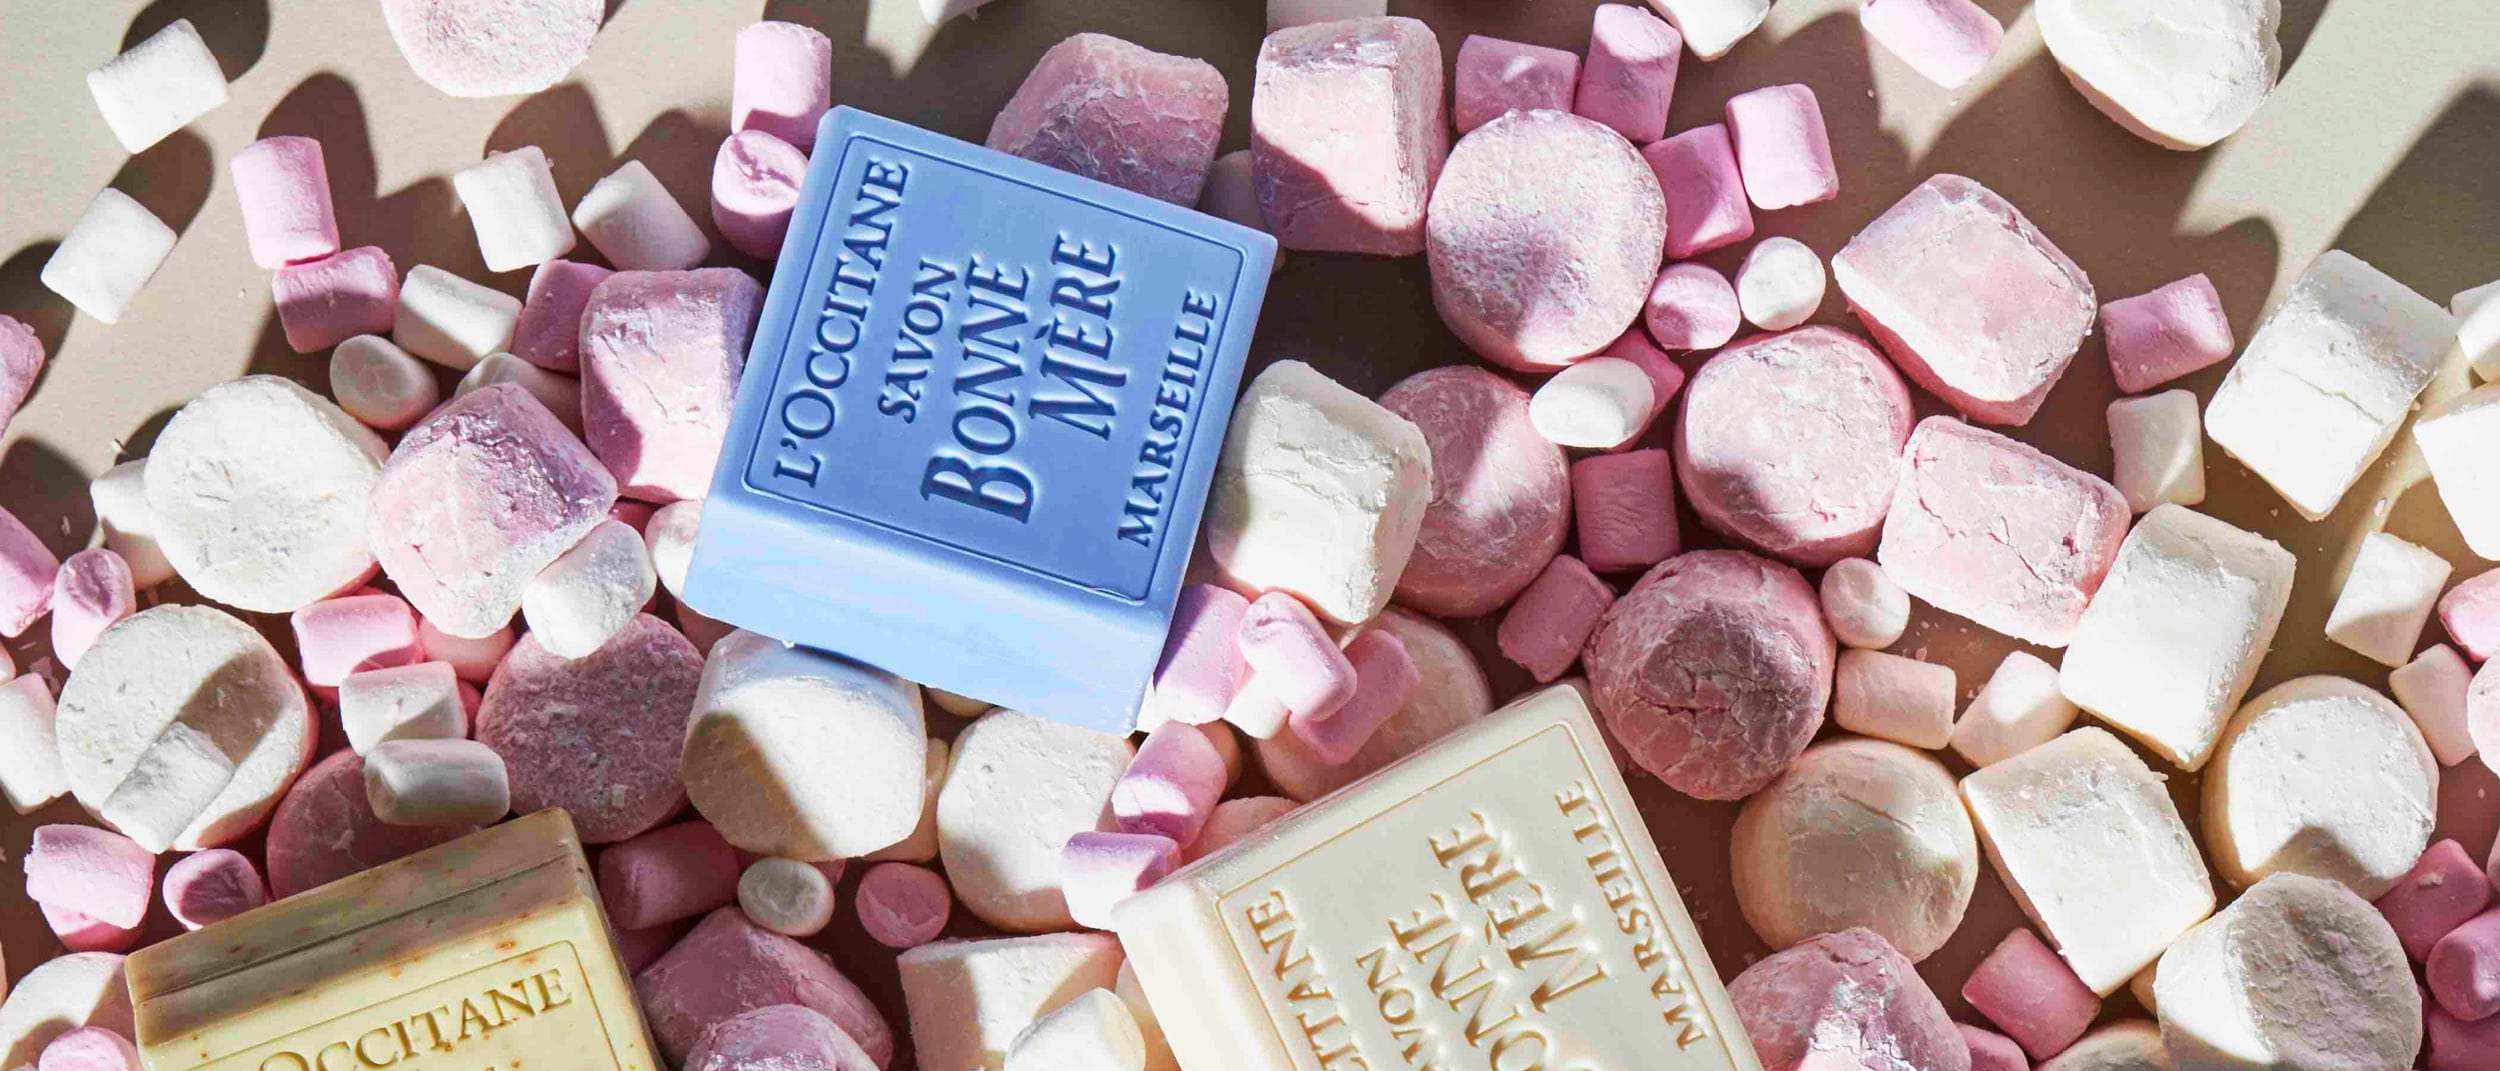 L'Occitane: receive your complimentary soap holder*